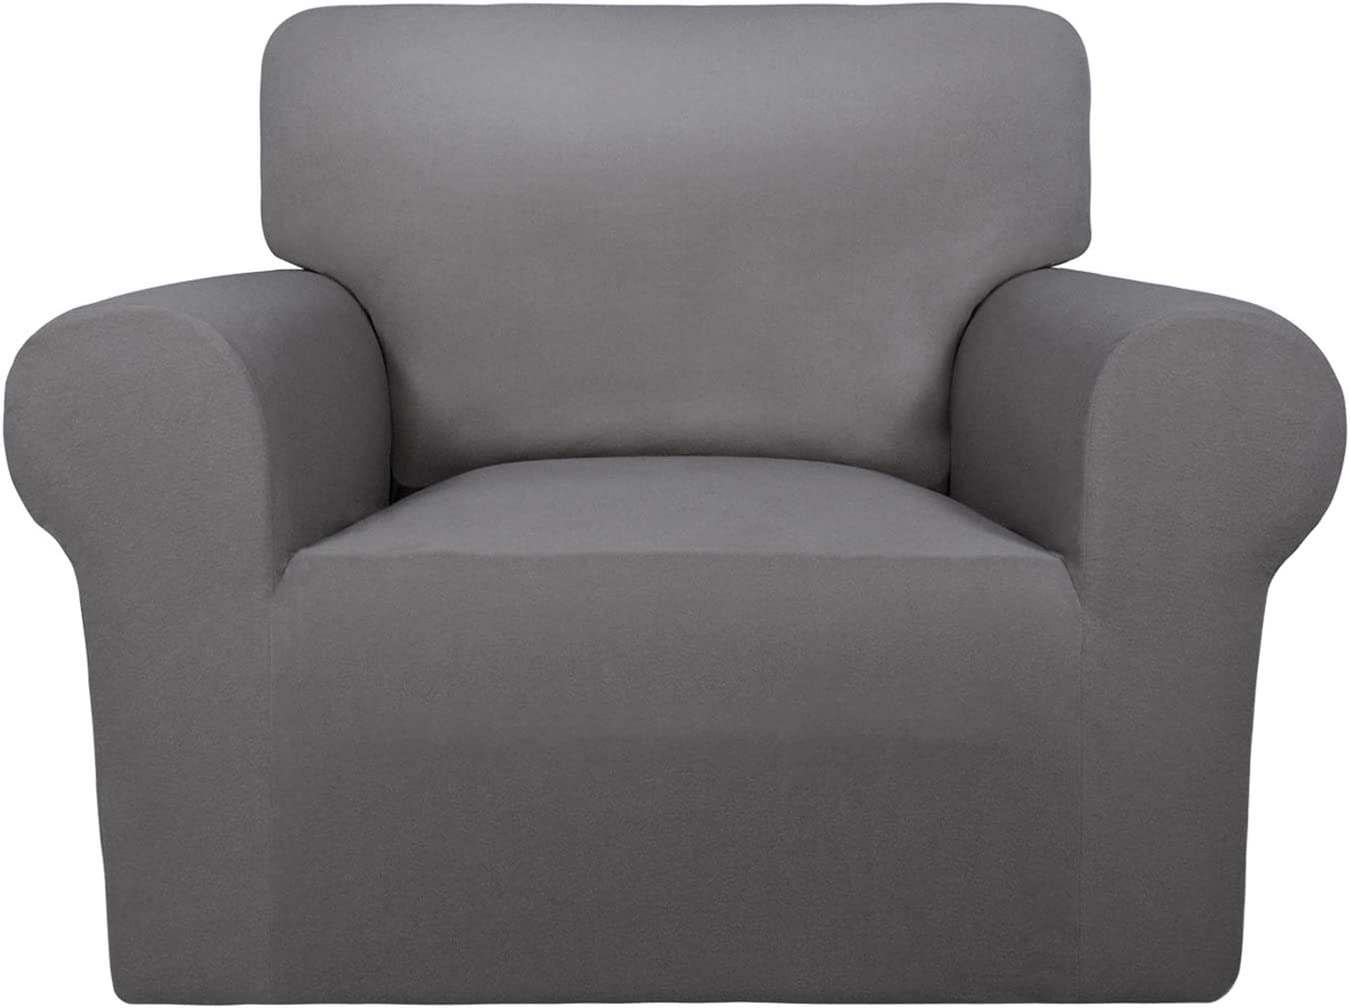 PureFit Super Stretch Chair Sofa Slipcover – Spandex Non Slip Soft Couch Sofa Cover, Washable Furniture Protector with Non Skid Foam and Elastic Bottom for Kids, Pets (Chair,Light Gray)